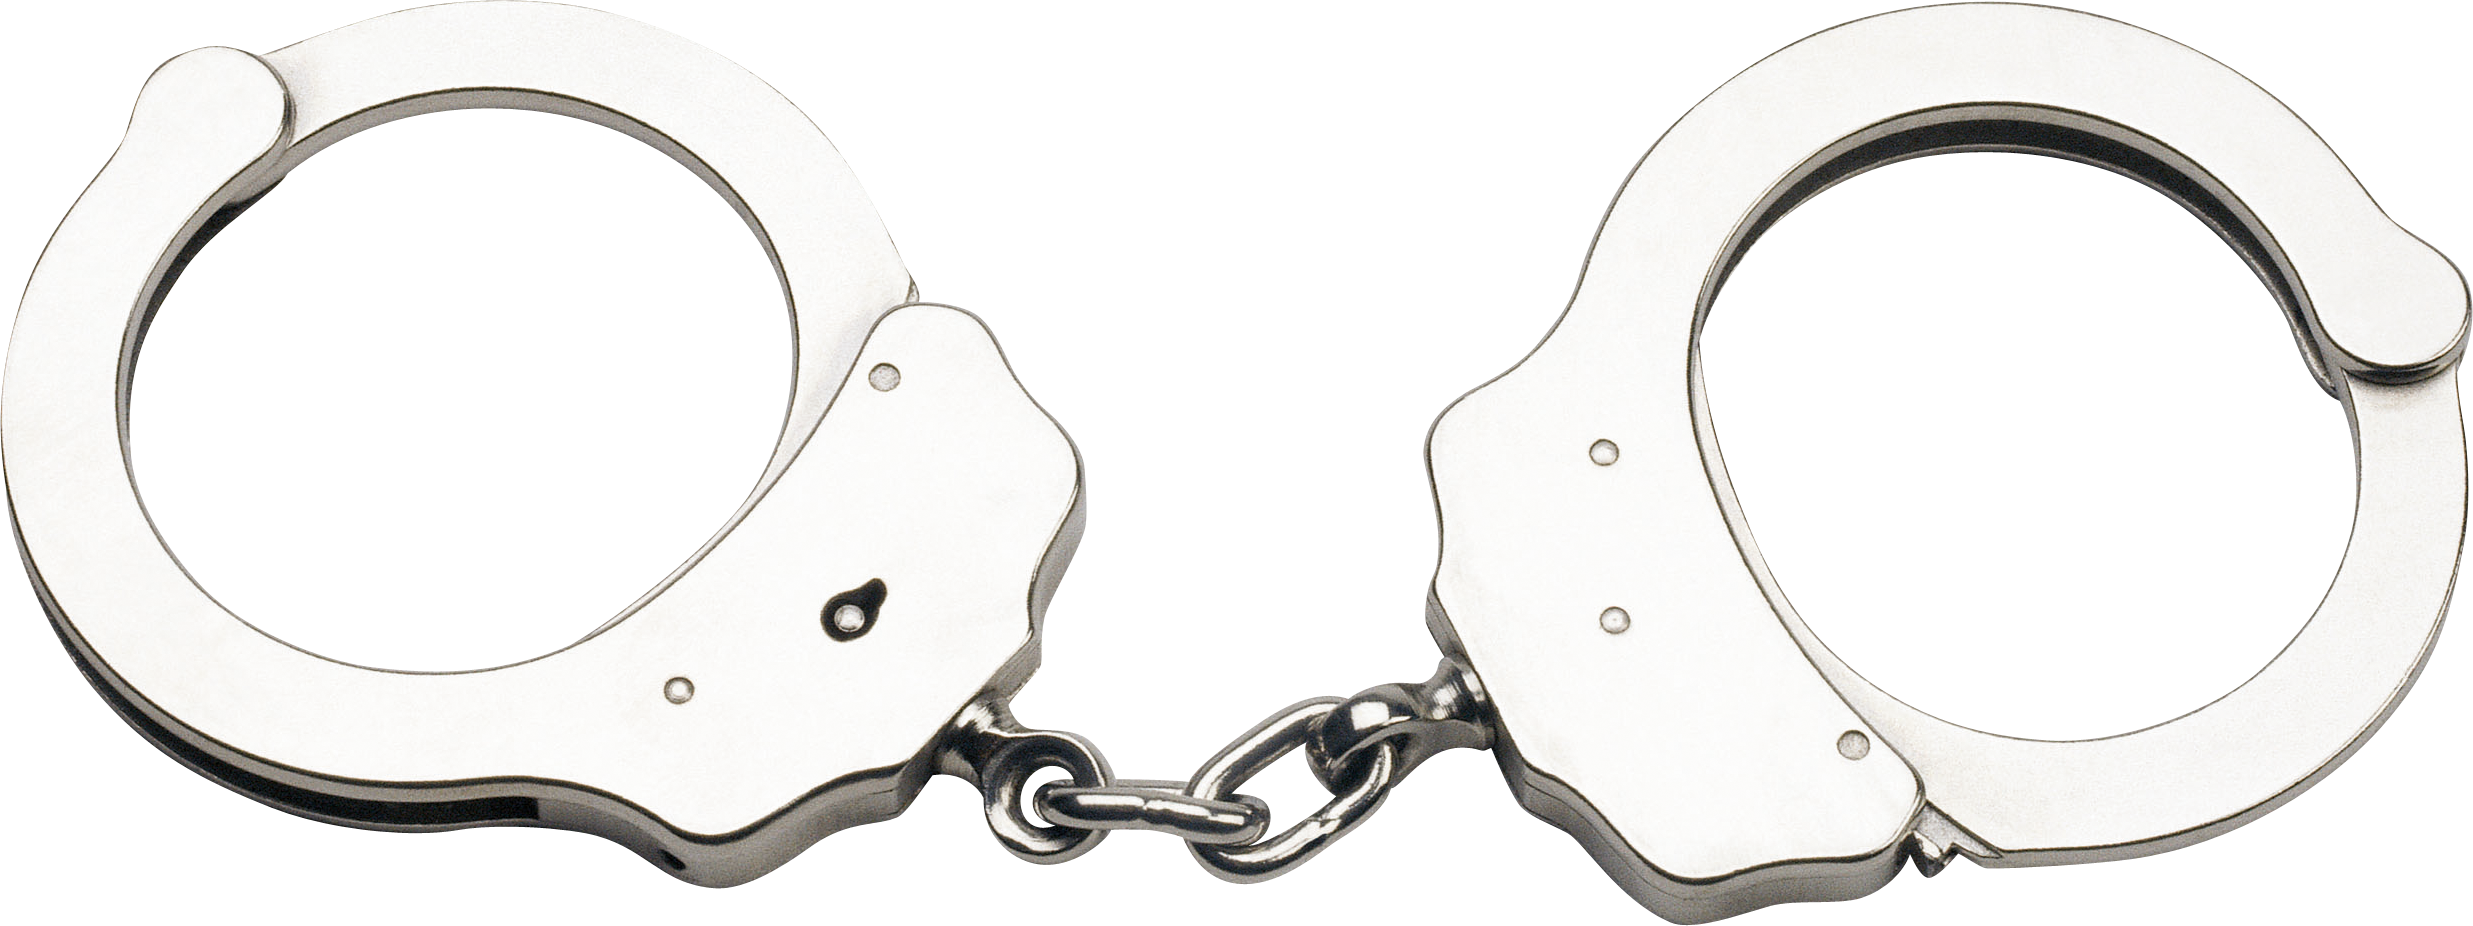 Silver Handcuffs Png Image Handcuffs Silver Double Lock